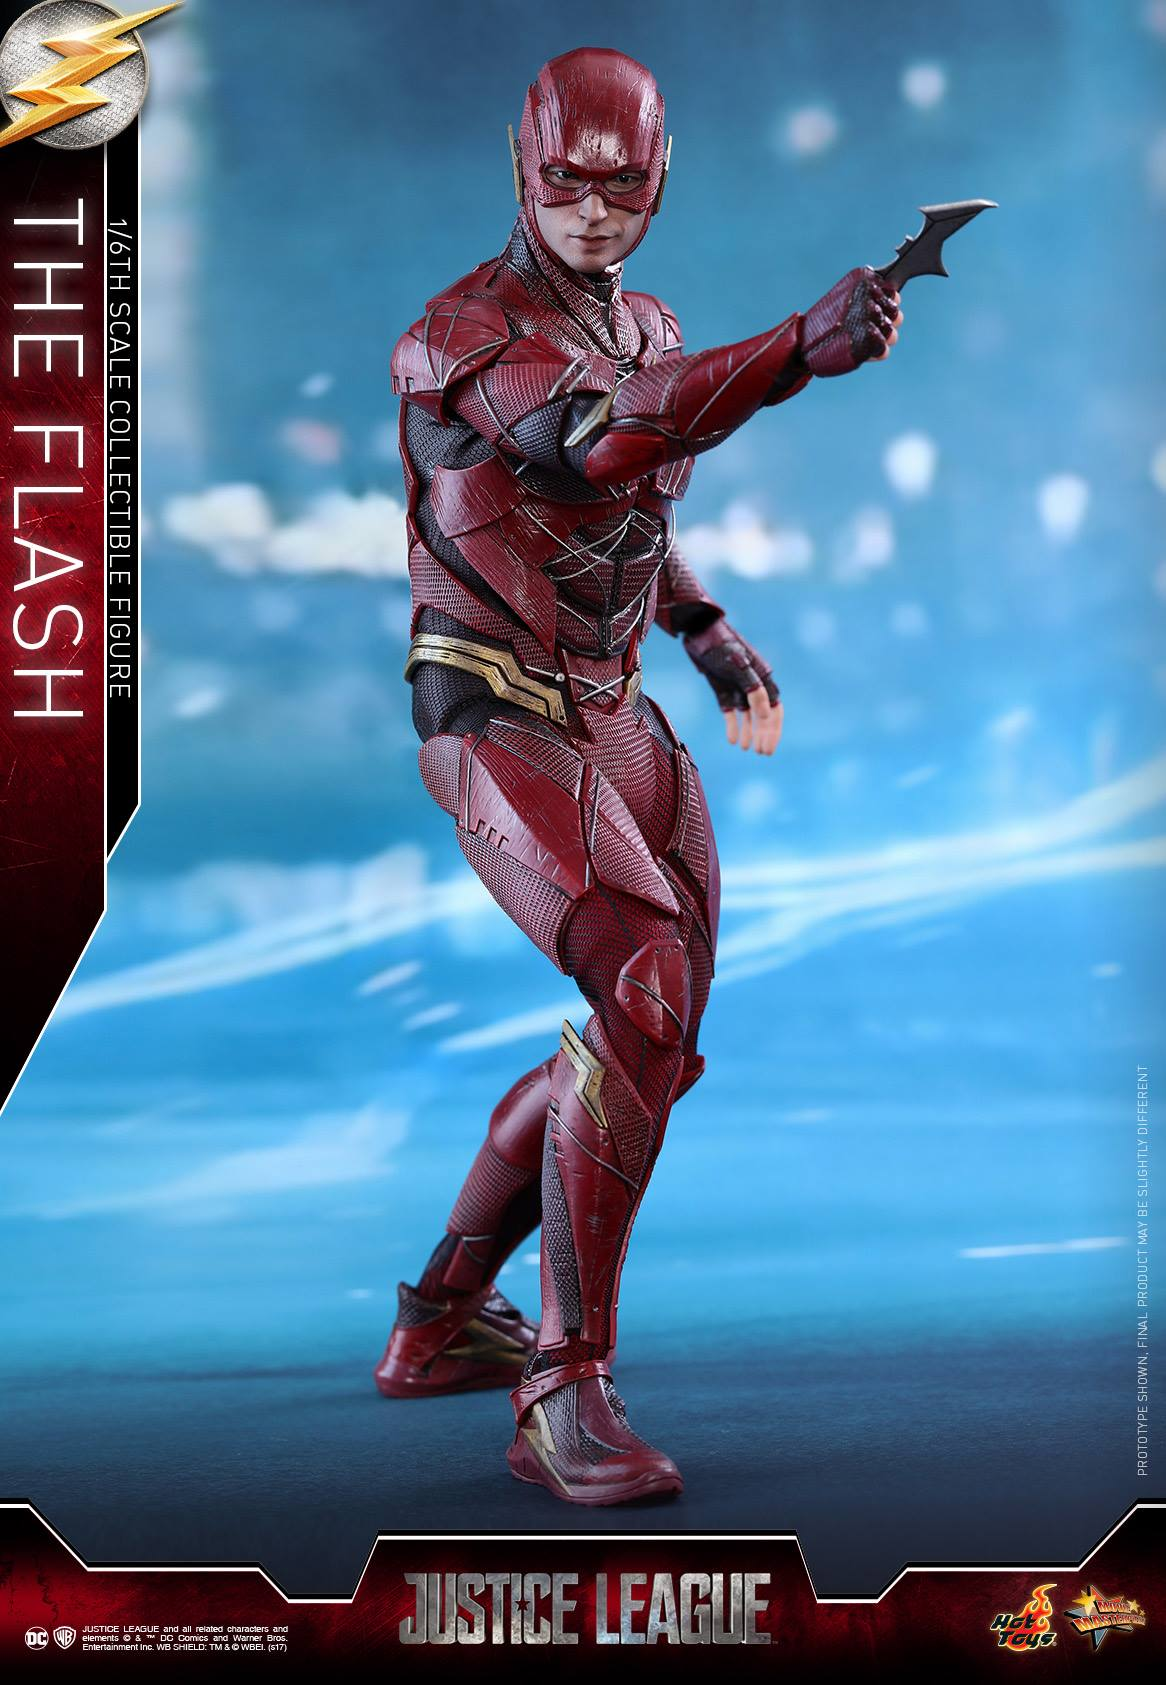 Hot-Toys-Justice-League-The-Flash-011